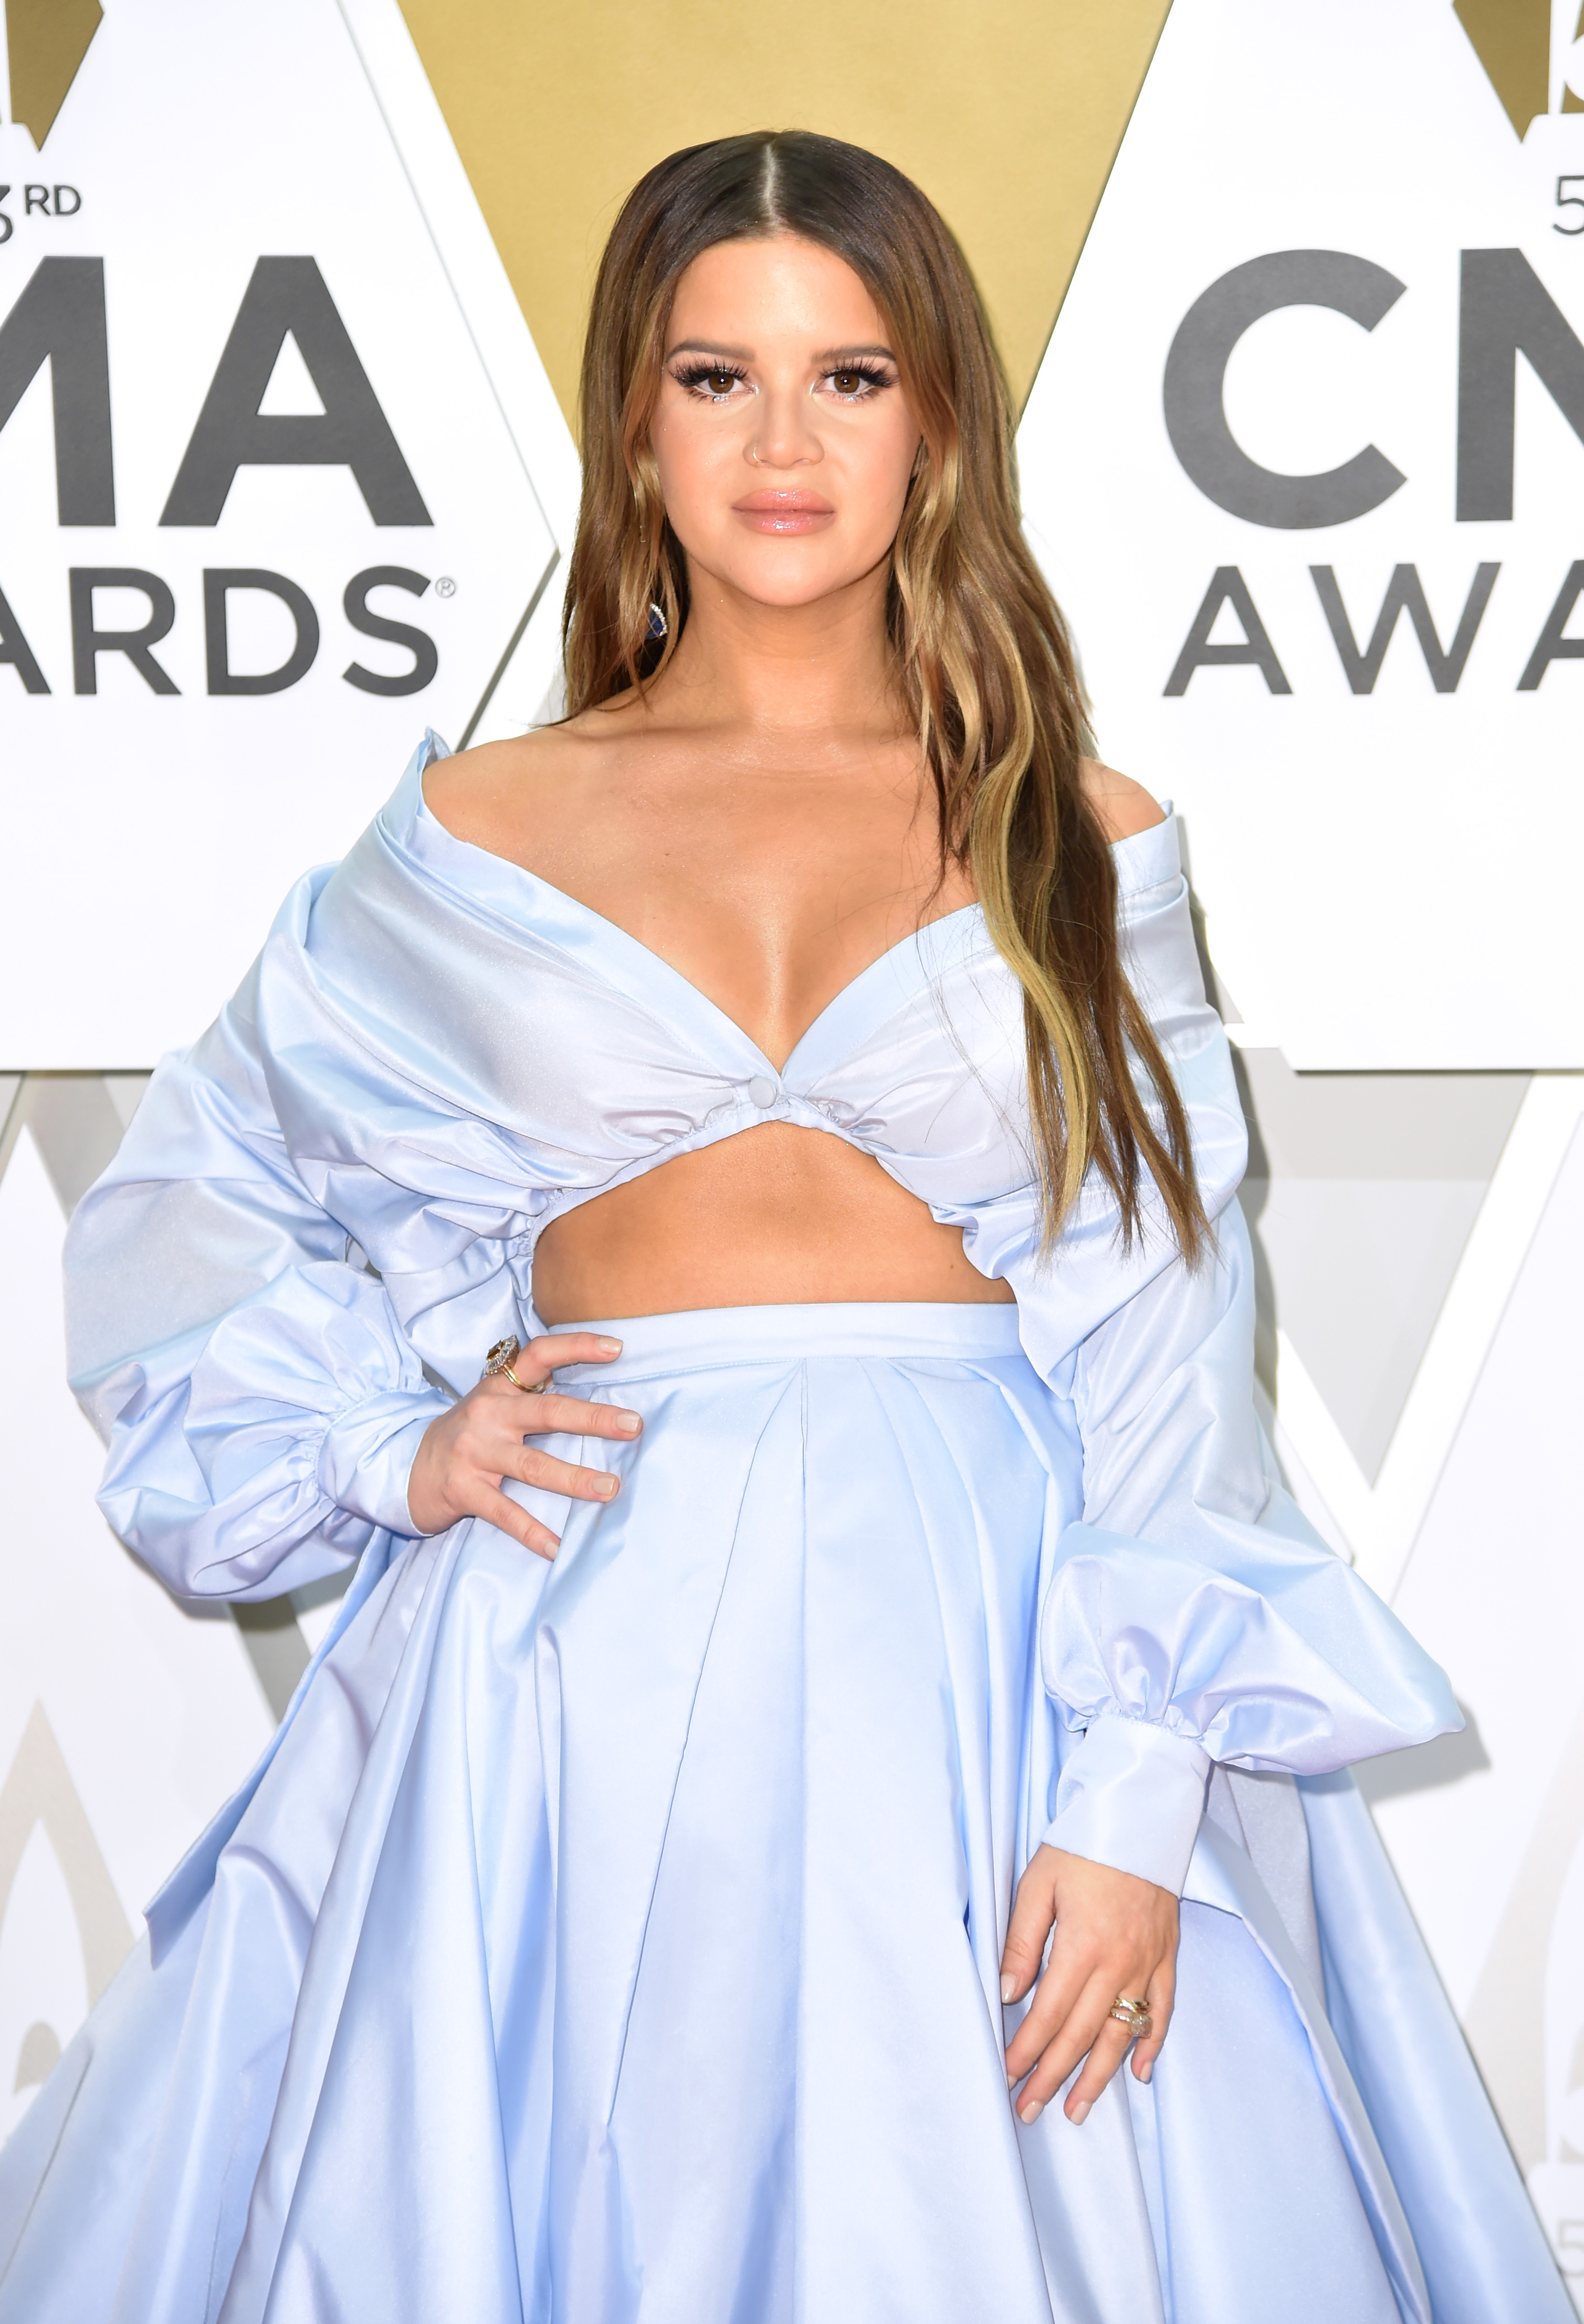 Maren Morris Shows Off Her Growing Baby Bump By the Pool: '2nd Trimester'